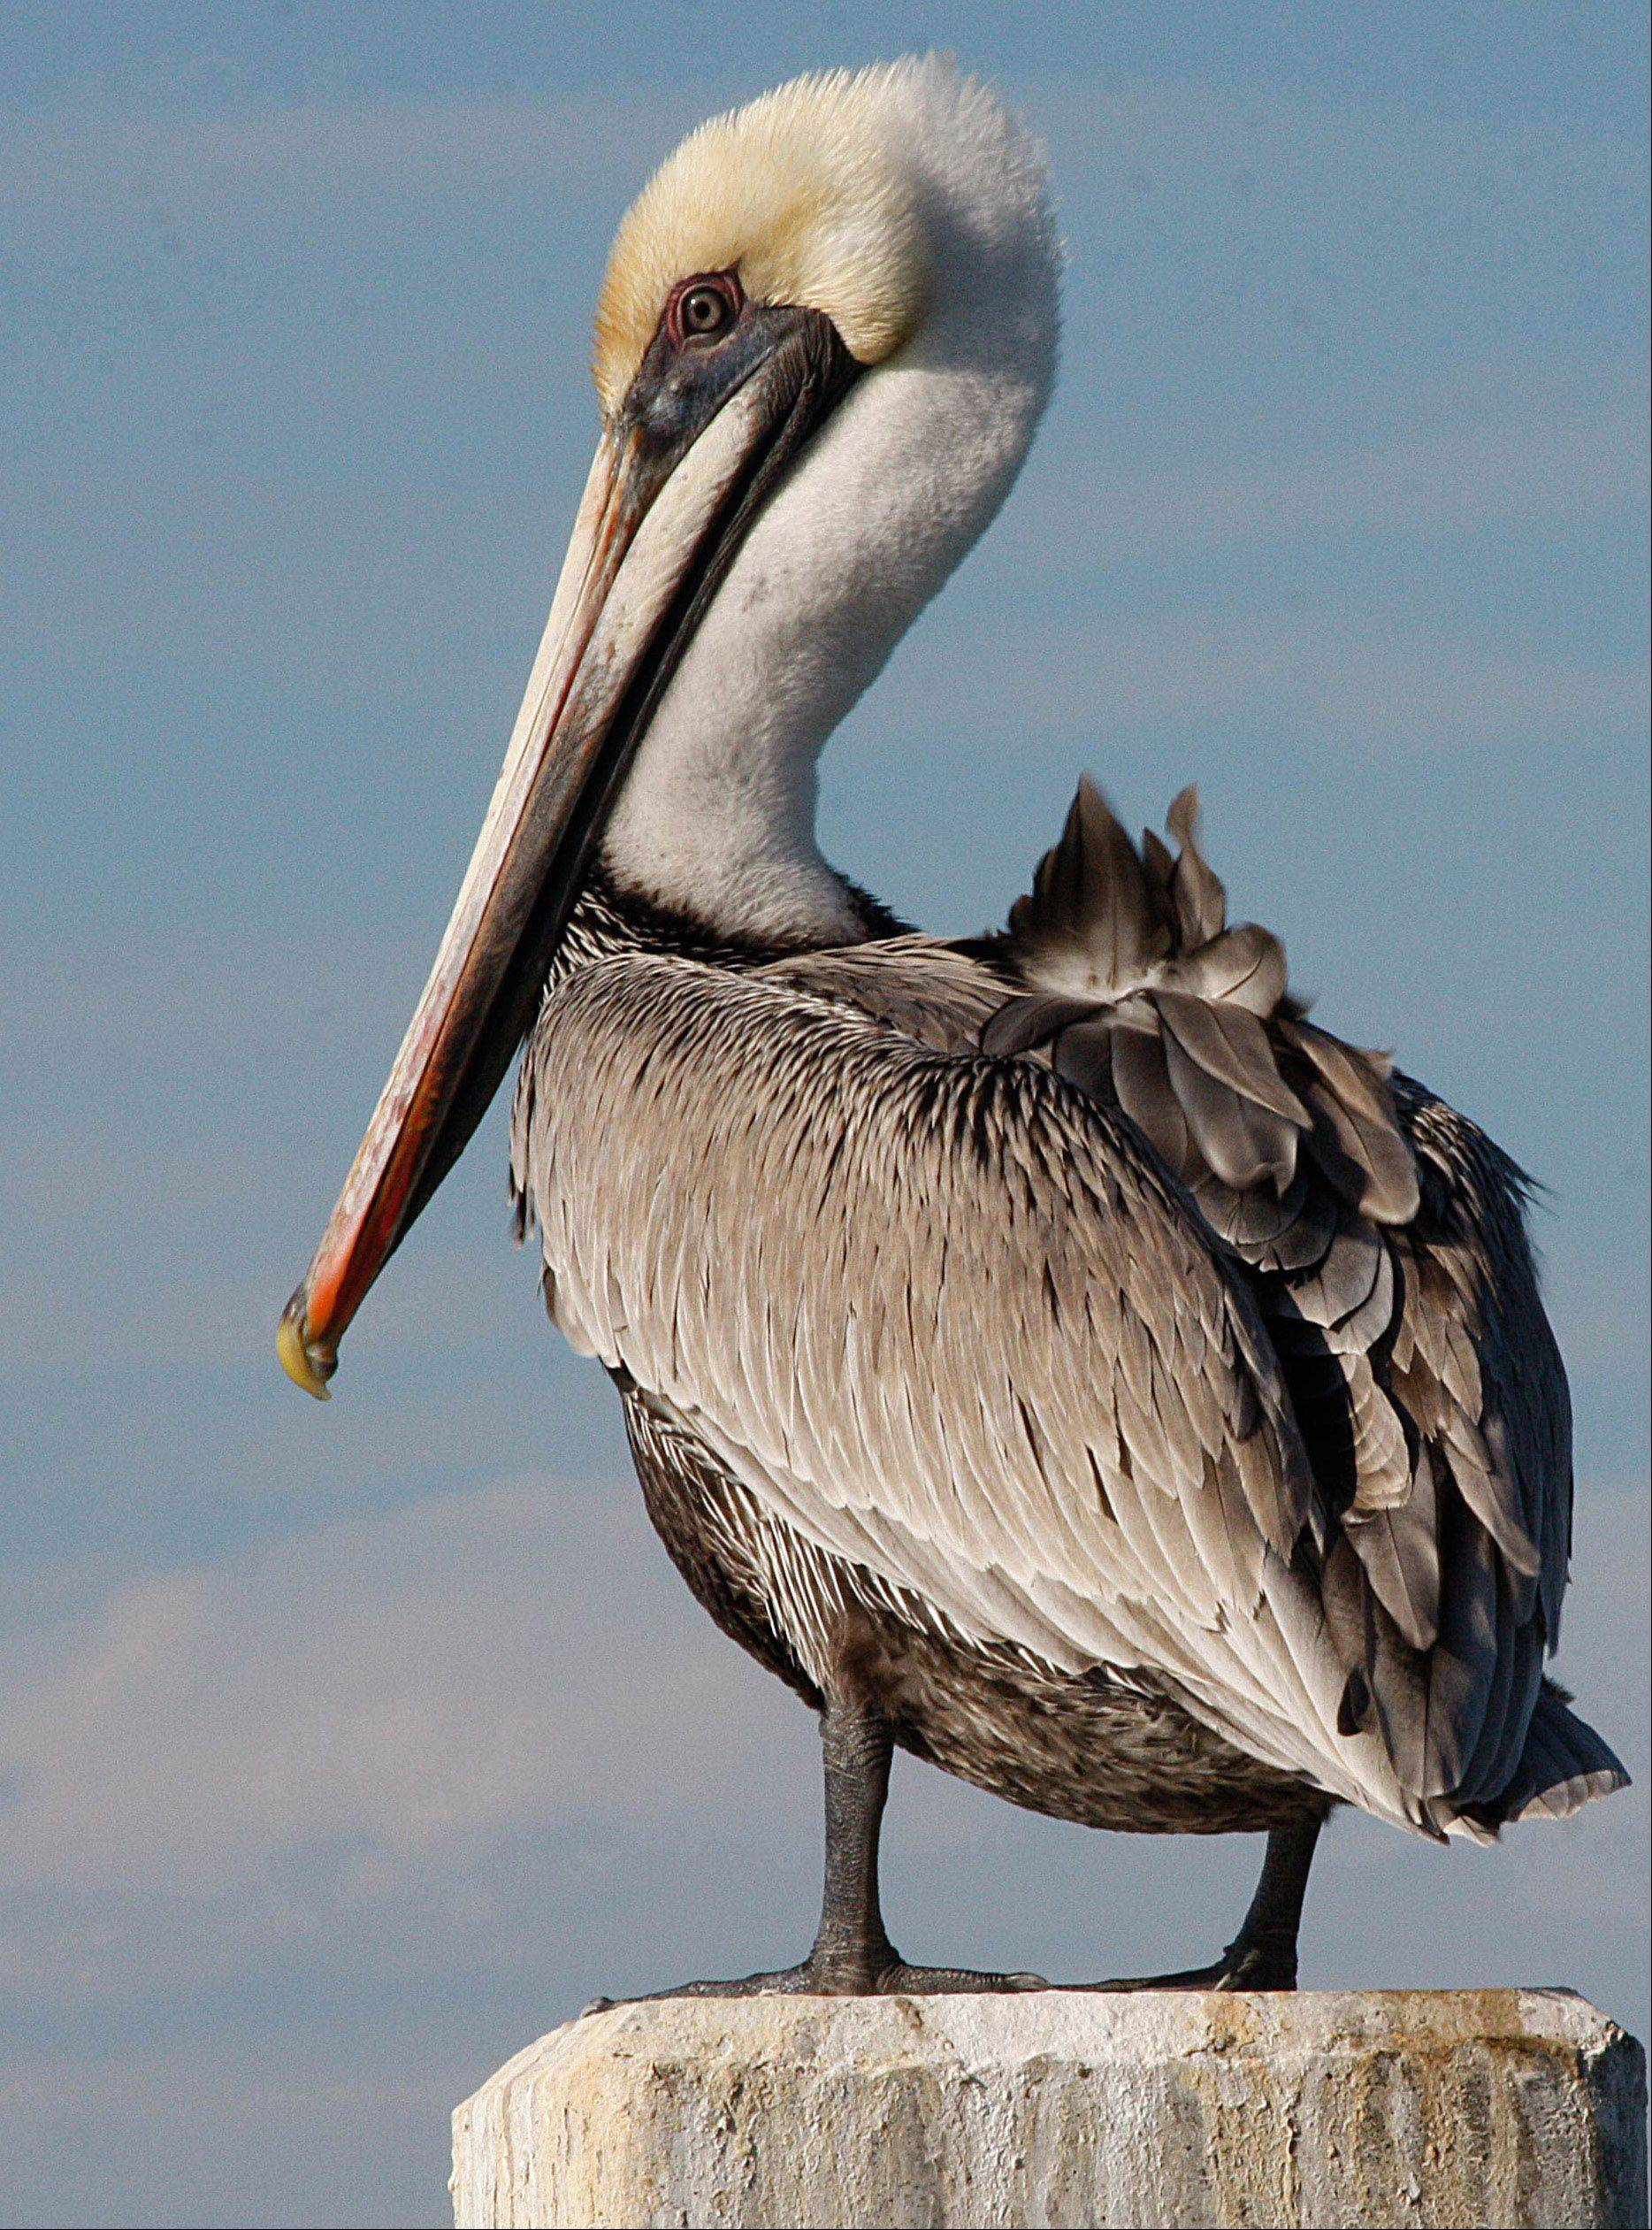 A pelican on a pier post in Marathon, Florida on January 23. The pier faces the Gulf and is relatively shallow so it is good eating for the birds.